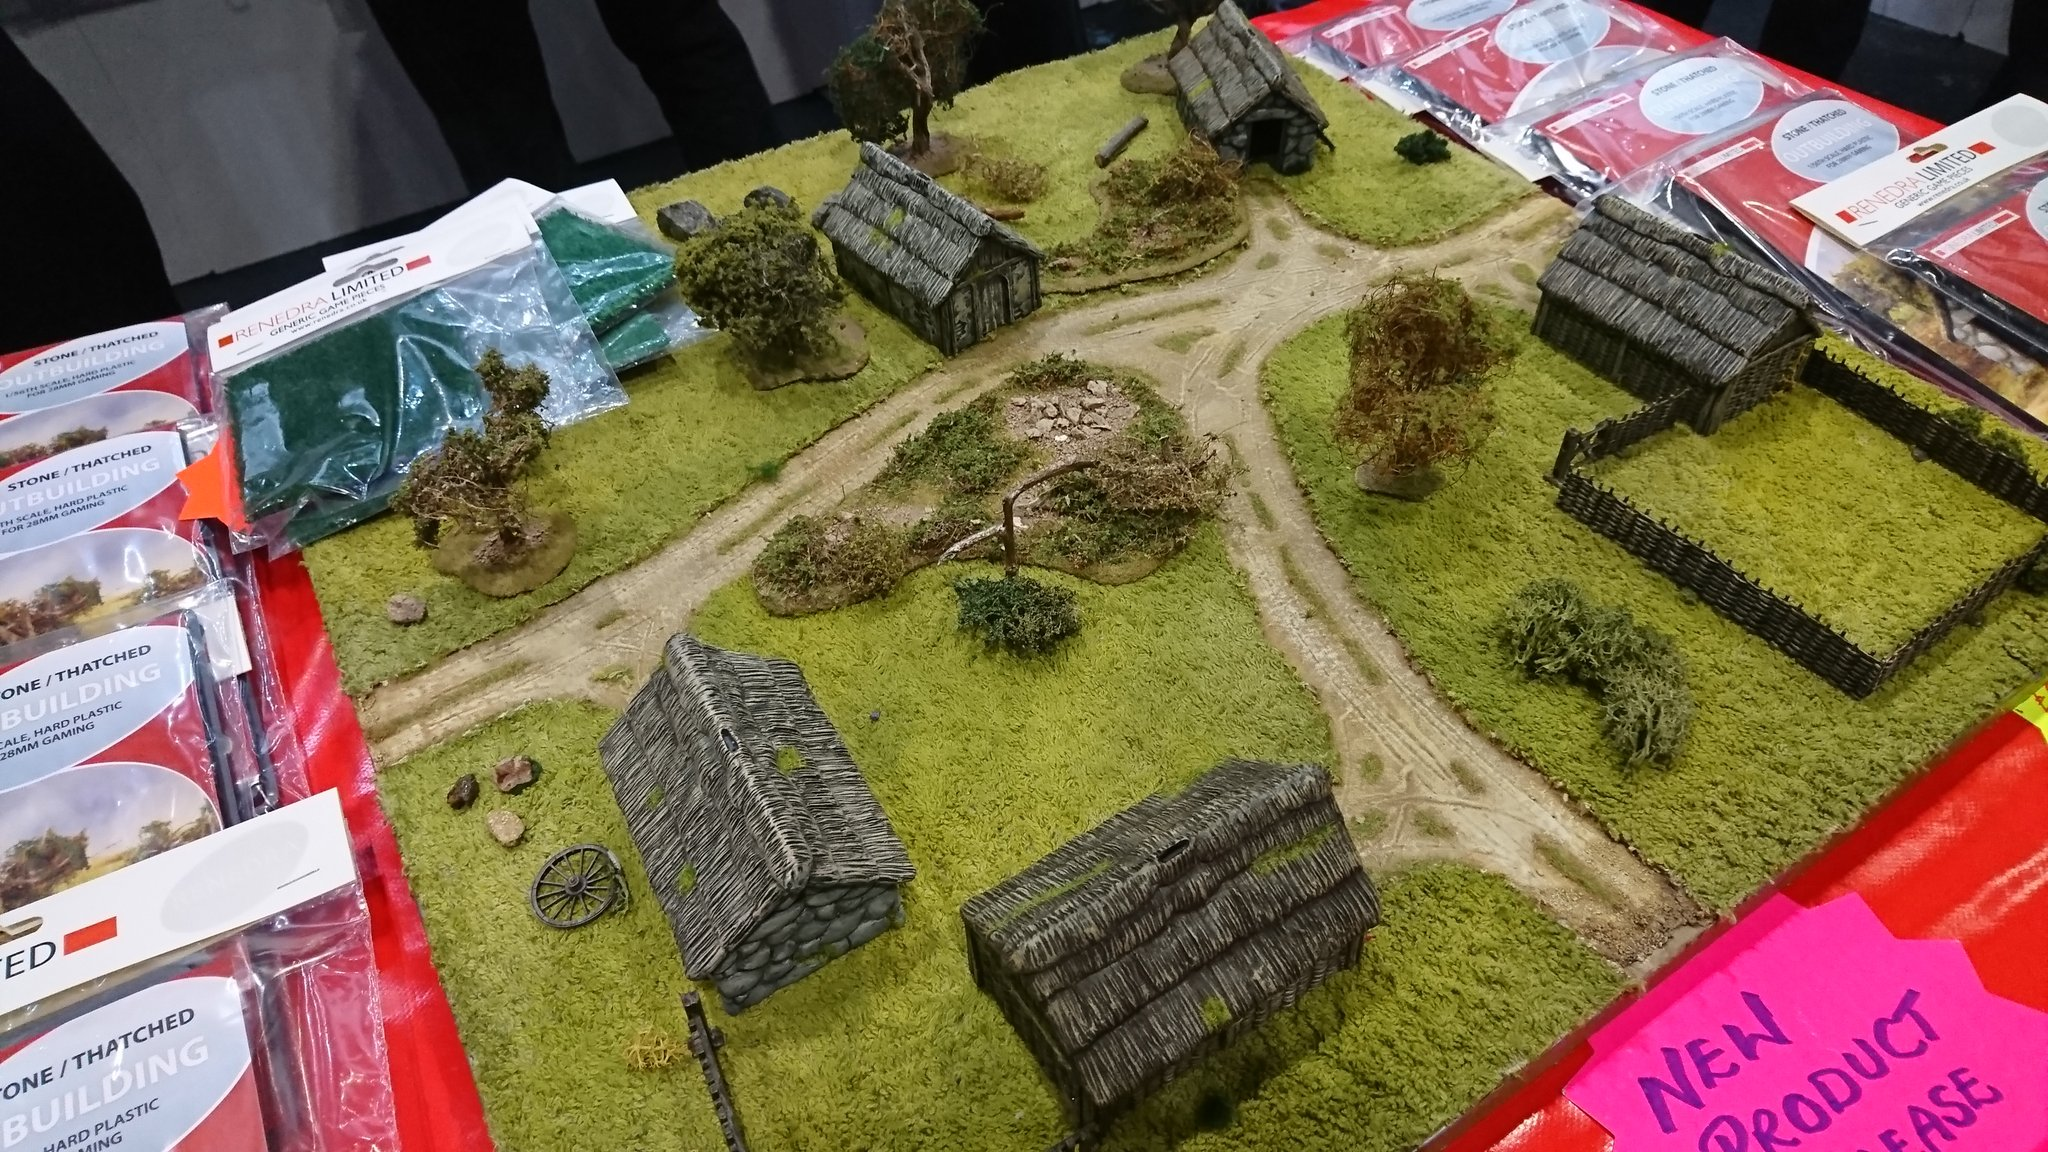 Neil Shuck of 'Meeples & Miniatures' on Twitter: